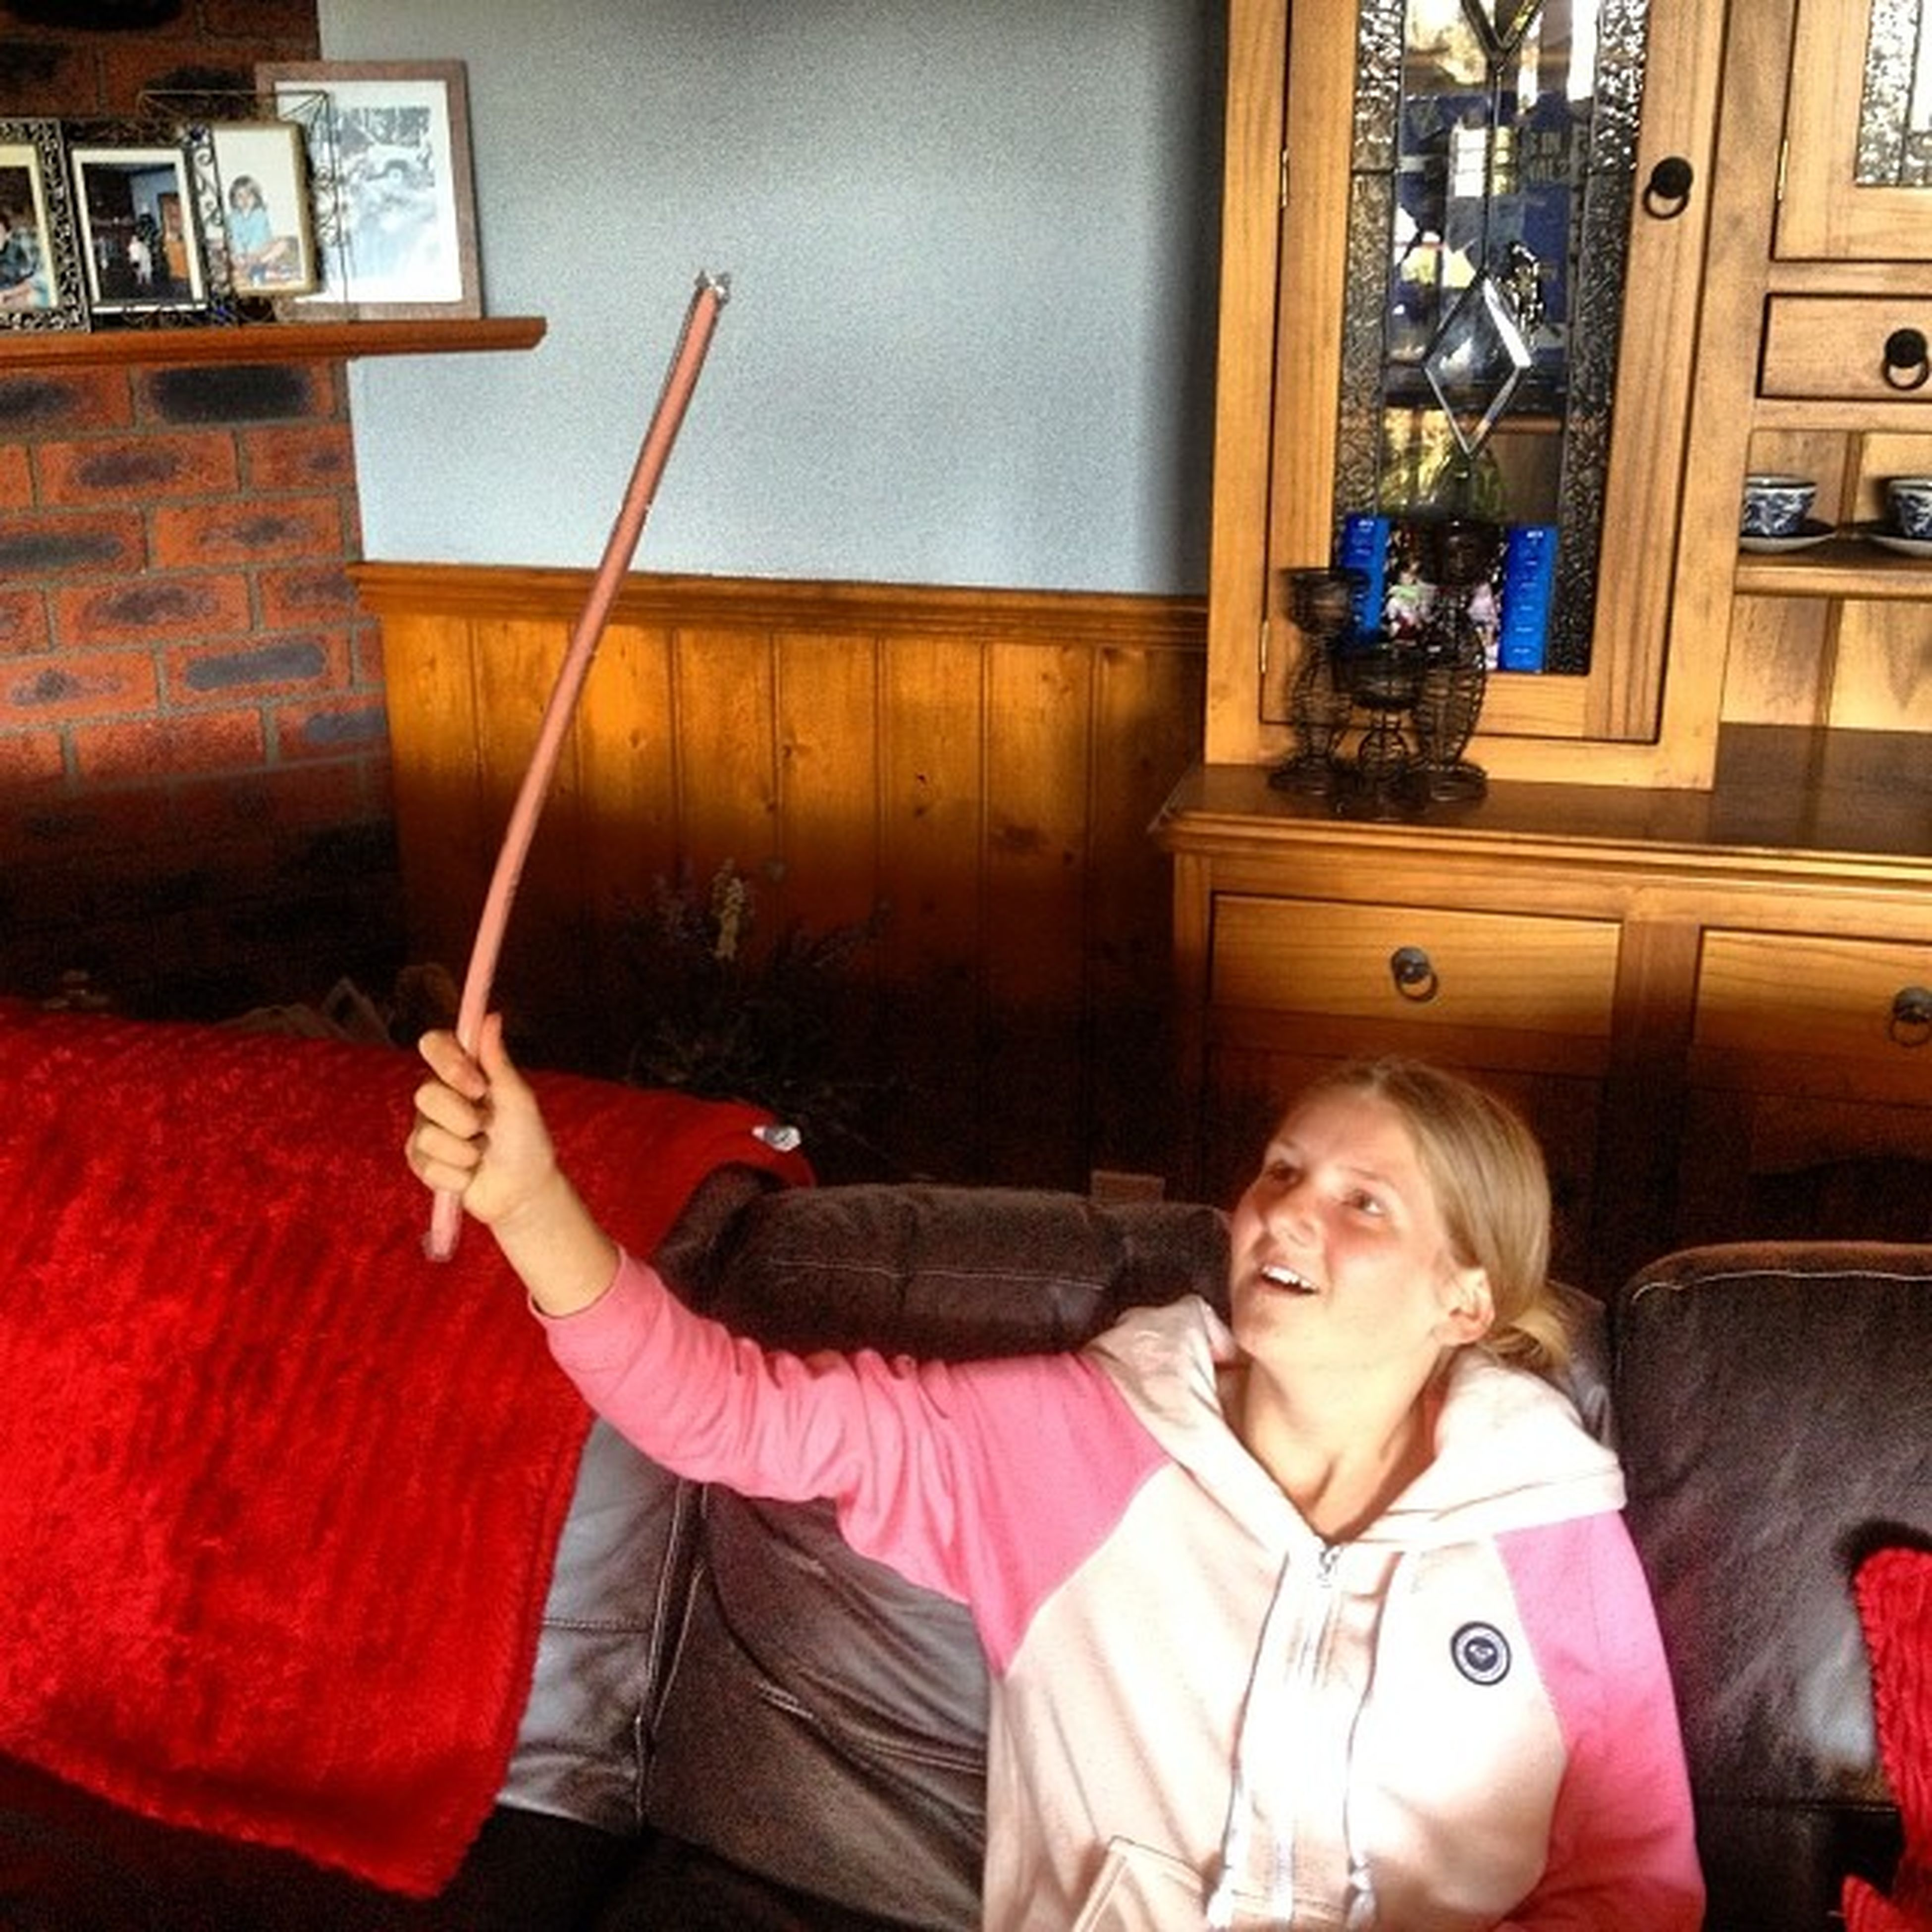 Sister just came home with the biggest stick of gum I've ever seen GivemeIt Imaginethebubbles Lilfk Imusthaveit dprox